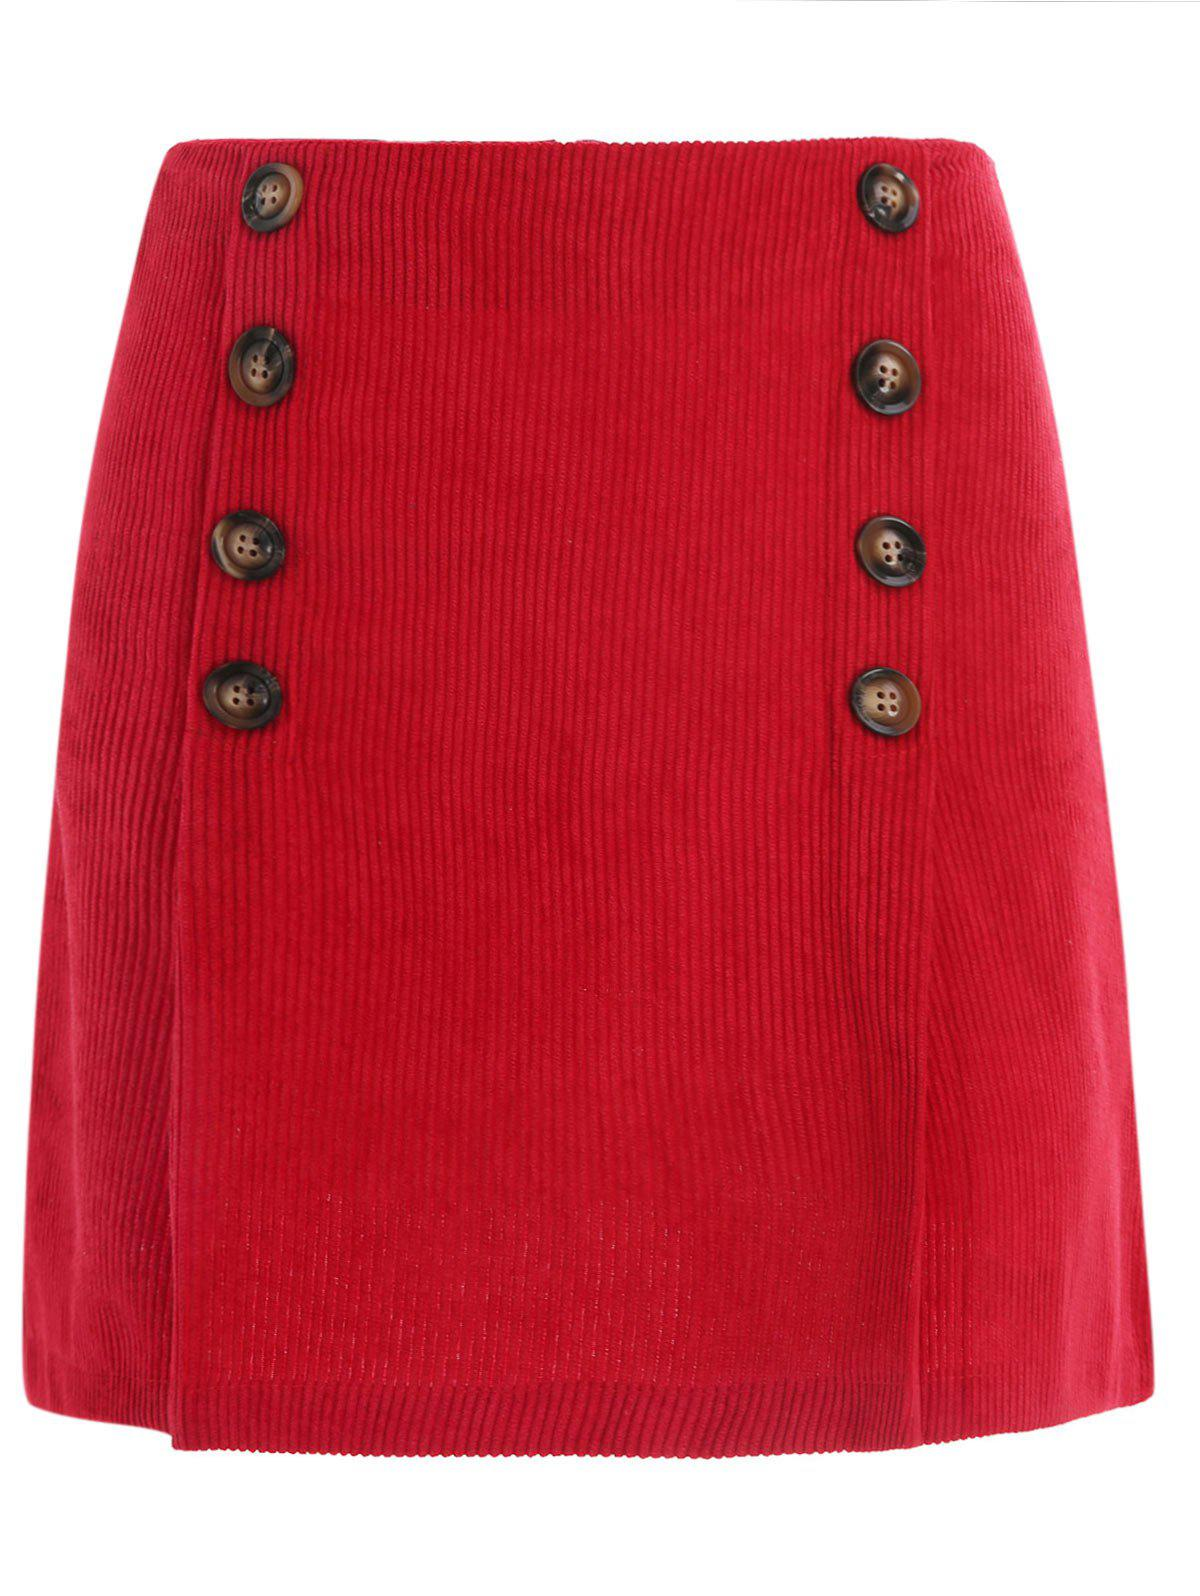 Chic Short Corduroy Skirt with Buttons